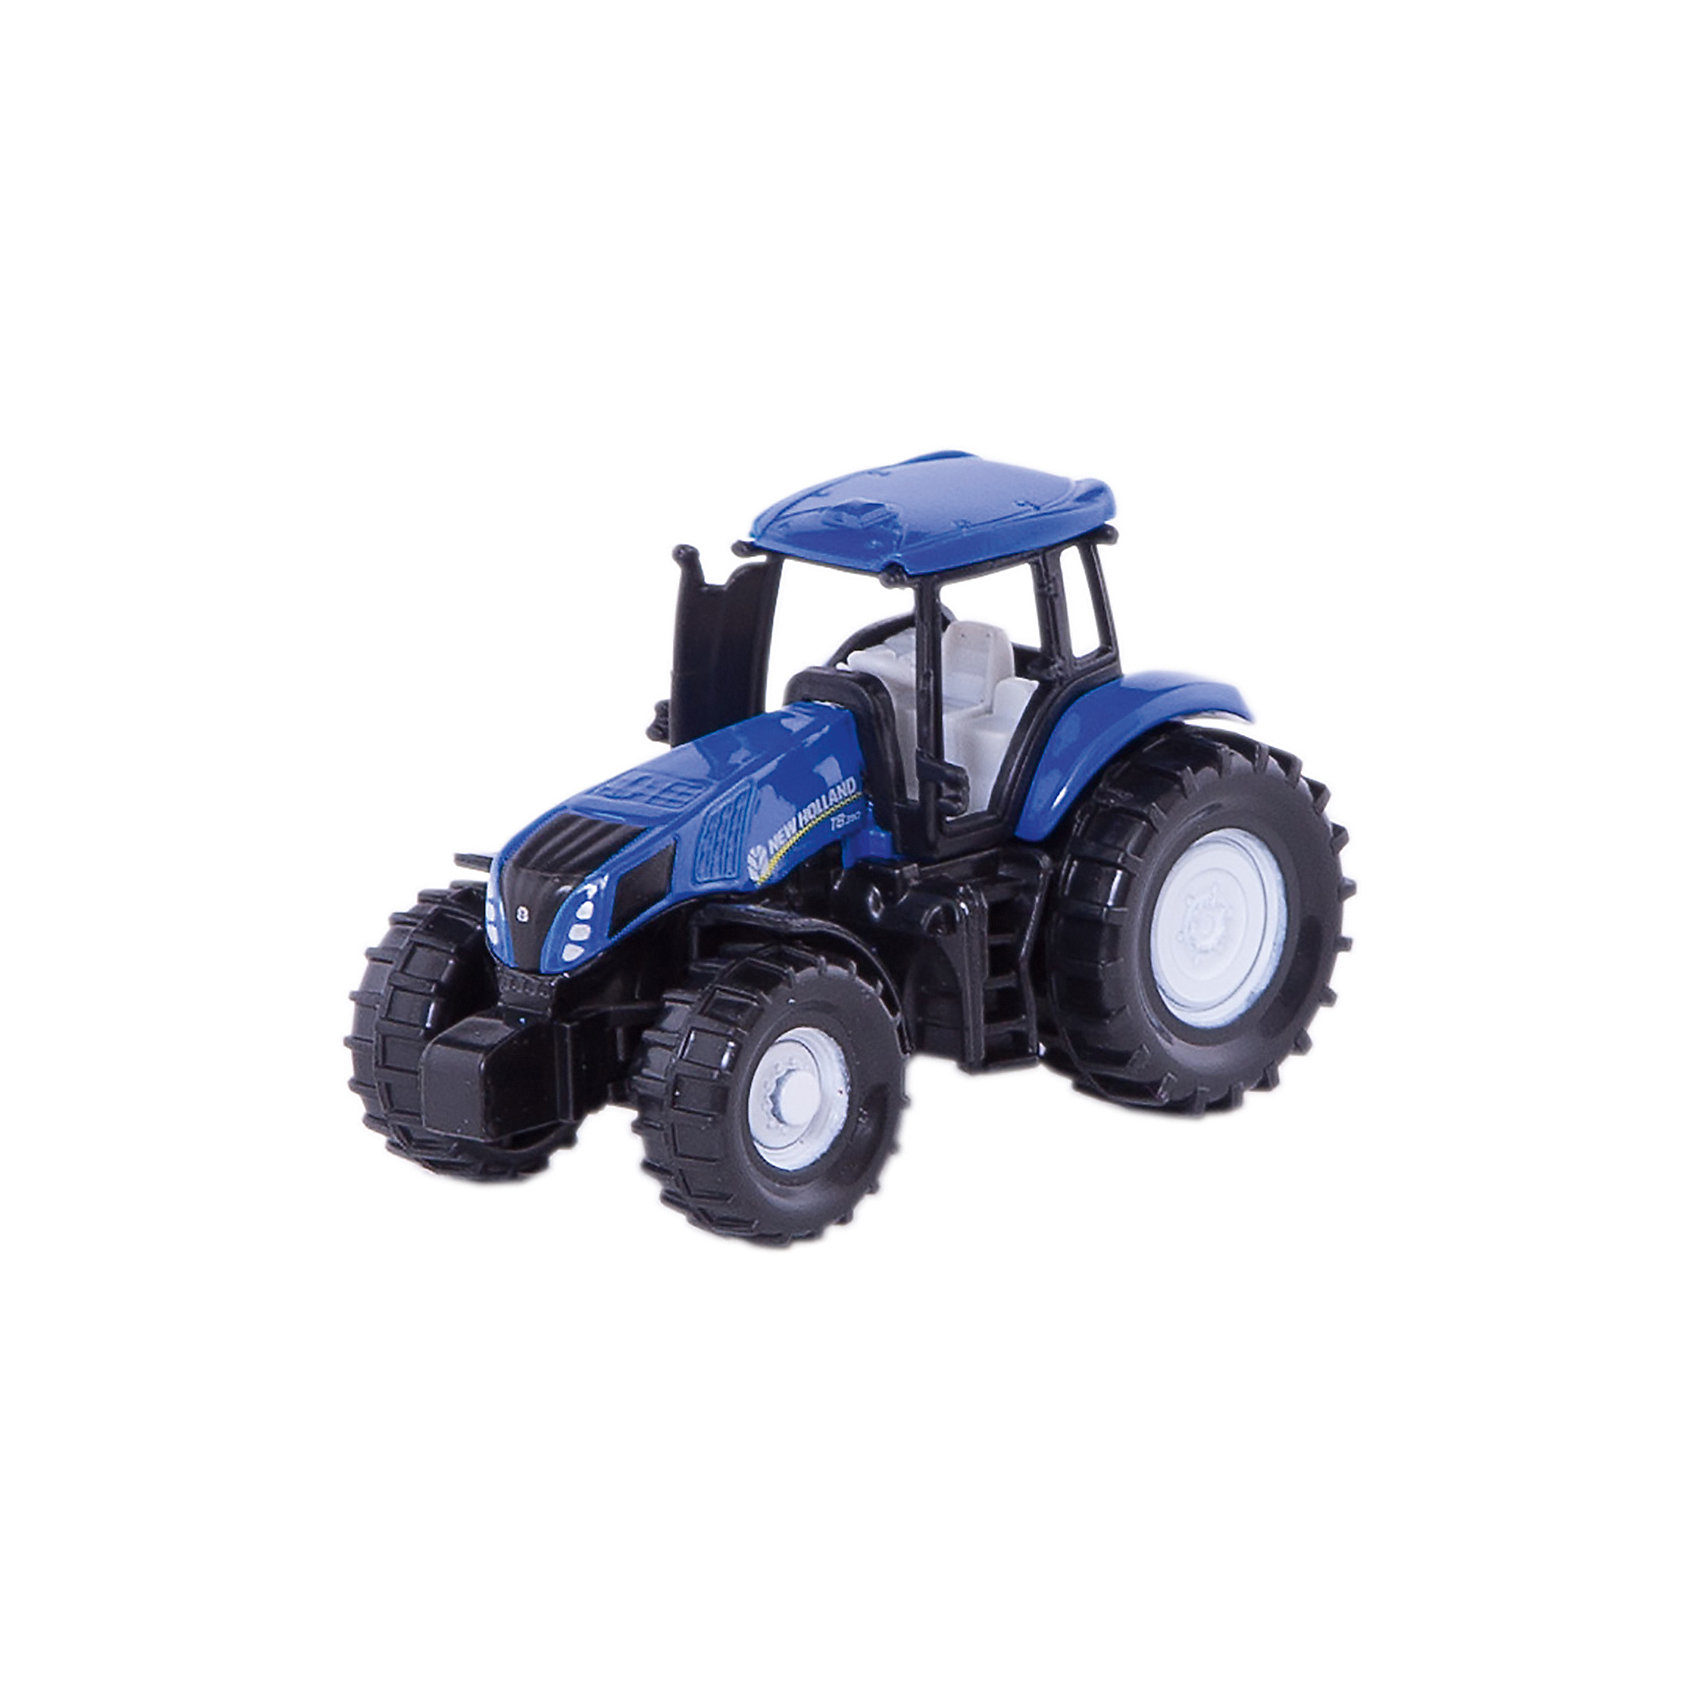 SIKU SIKU 1012 Трактор New Holland T8.390 игрушка siku трактор new holland t8 390 6 7 3 4 4 4см 1012